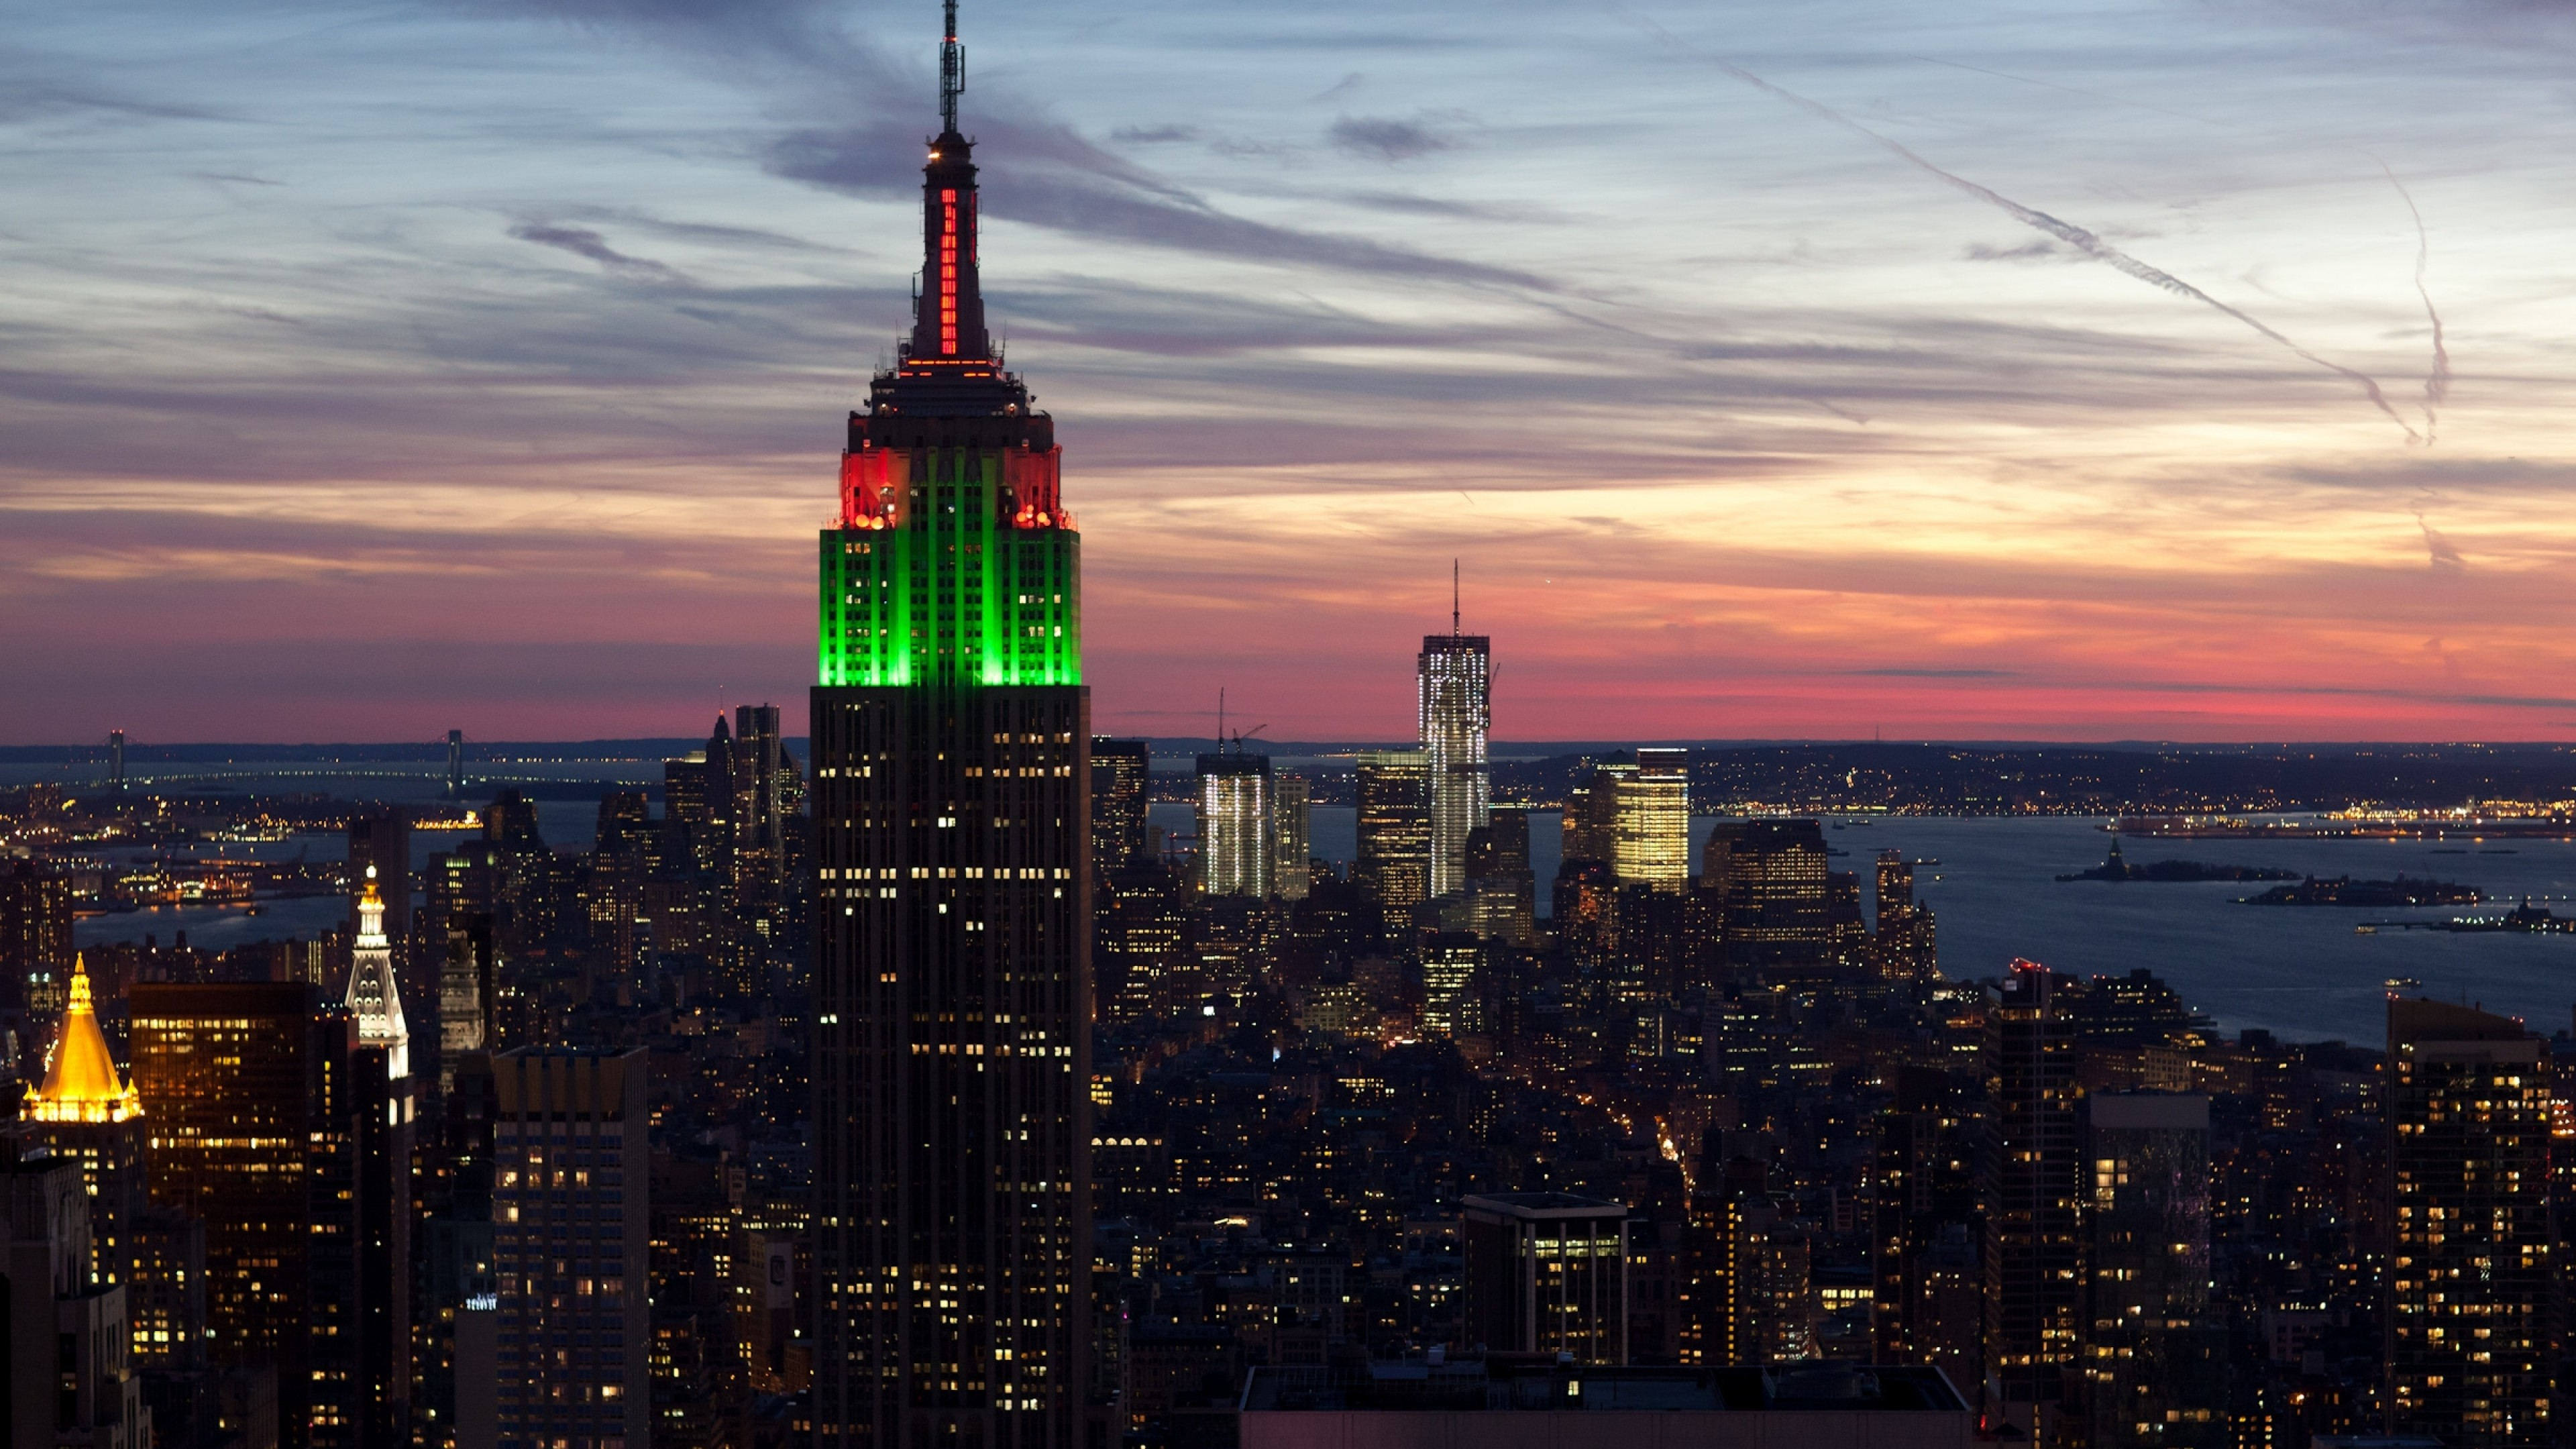 3840x2160  Wallpaper city, new york, empire state building, sunset